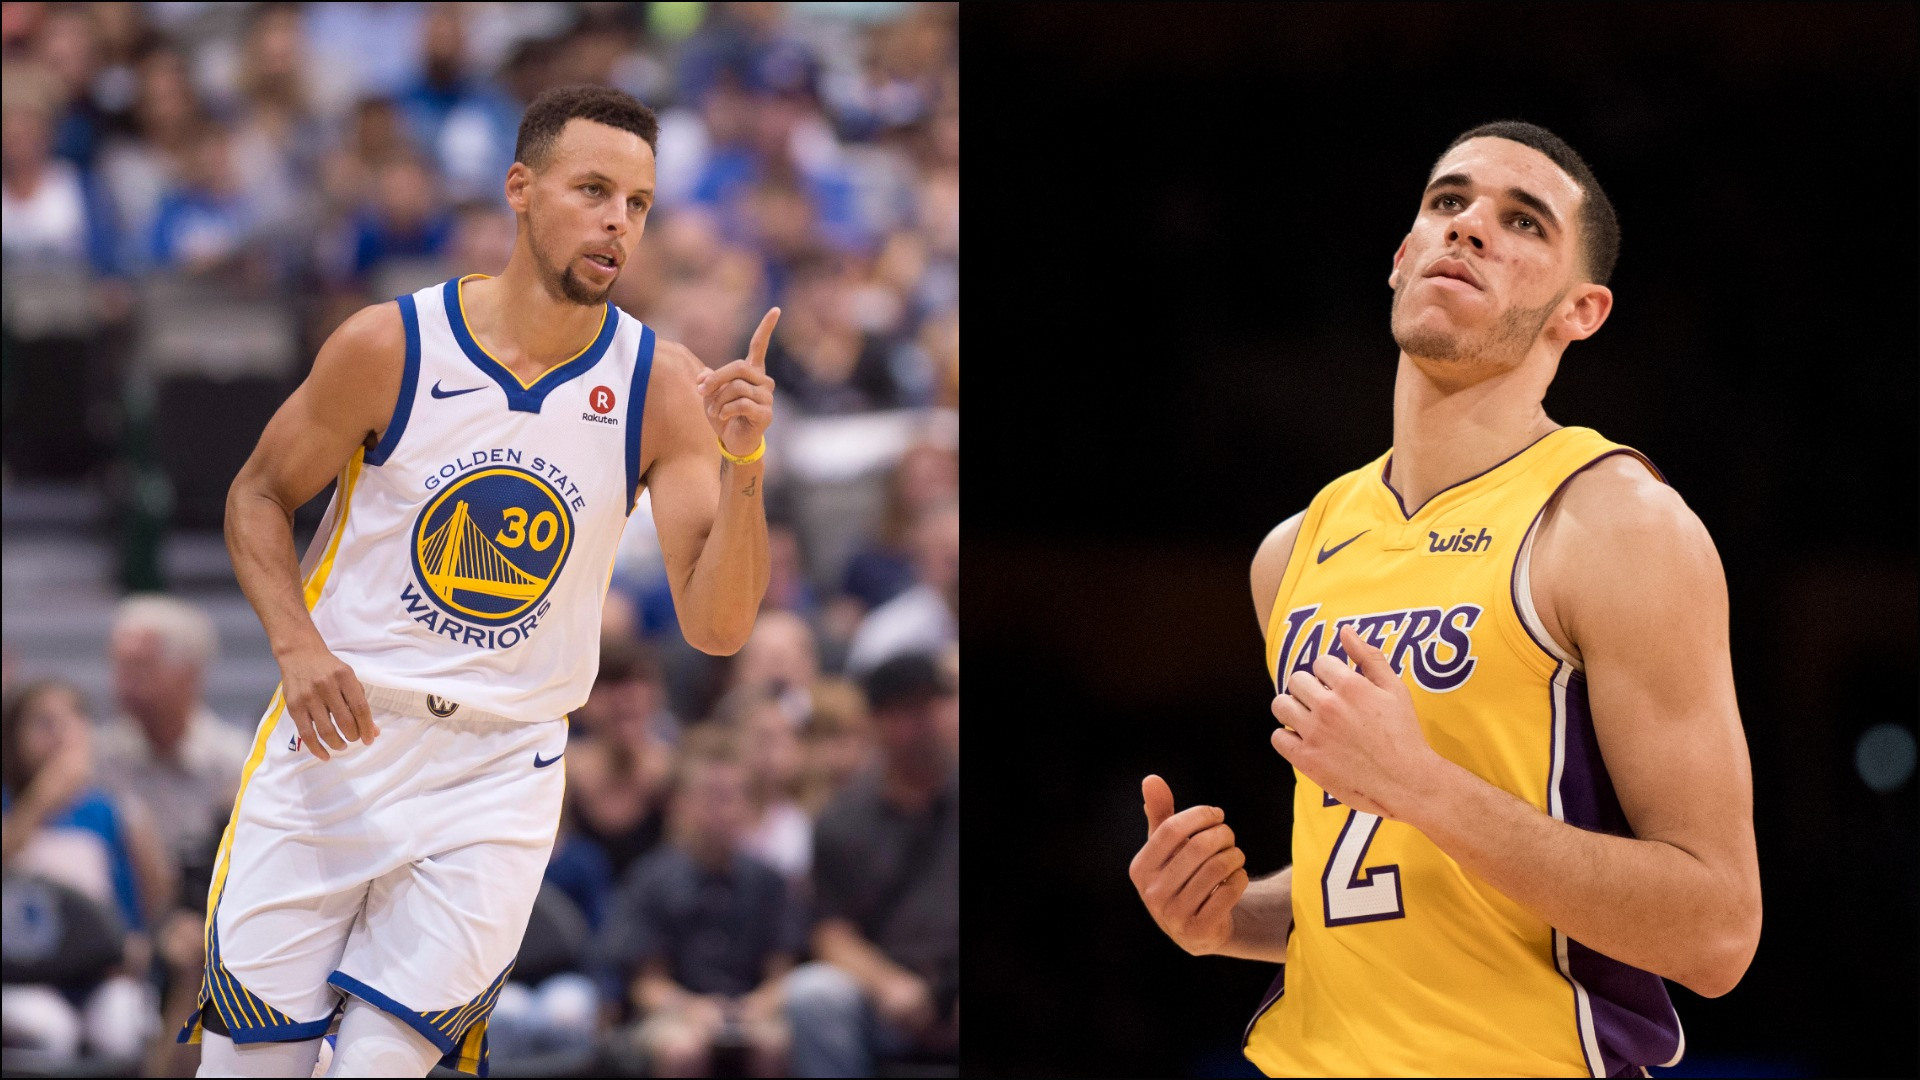 Steph Curry denies beef with LaVar Ball offers support for Lonzo Ball 1920x1080